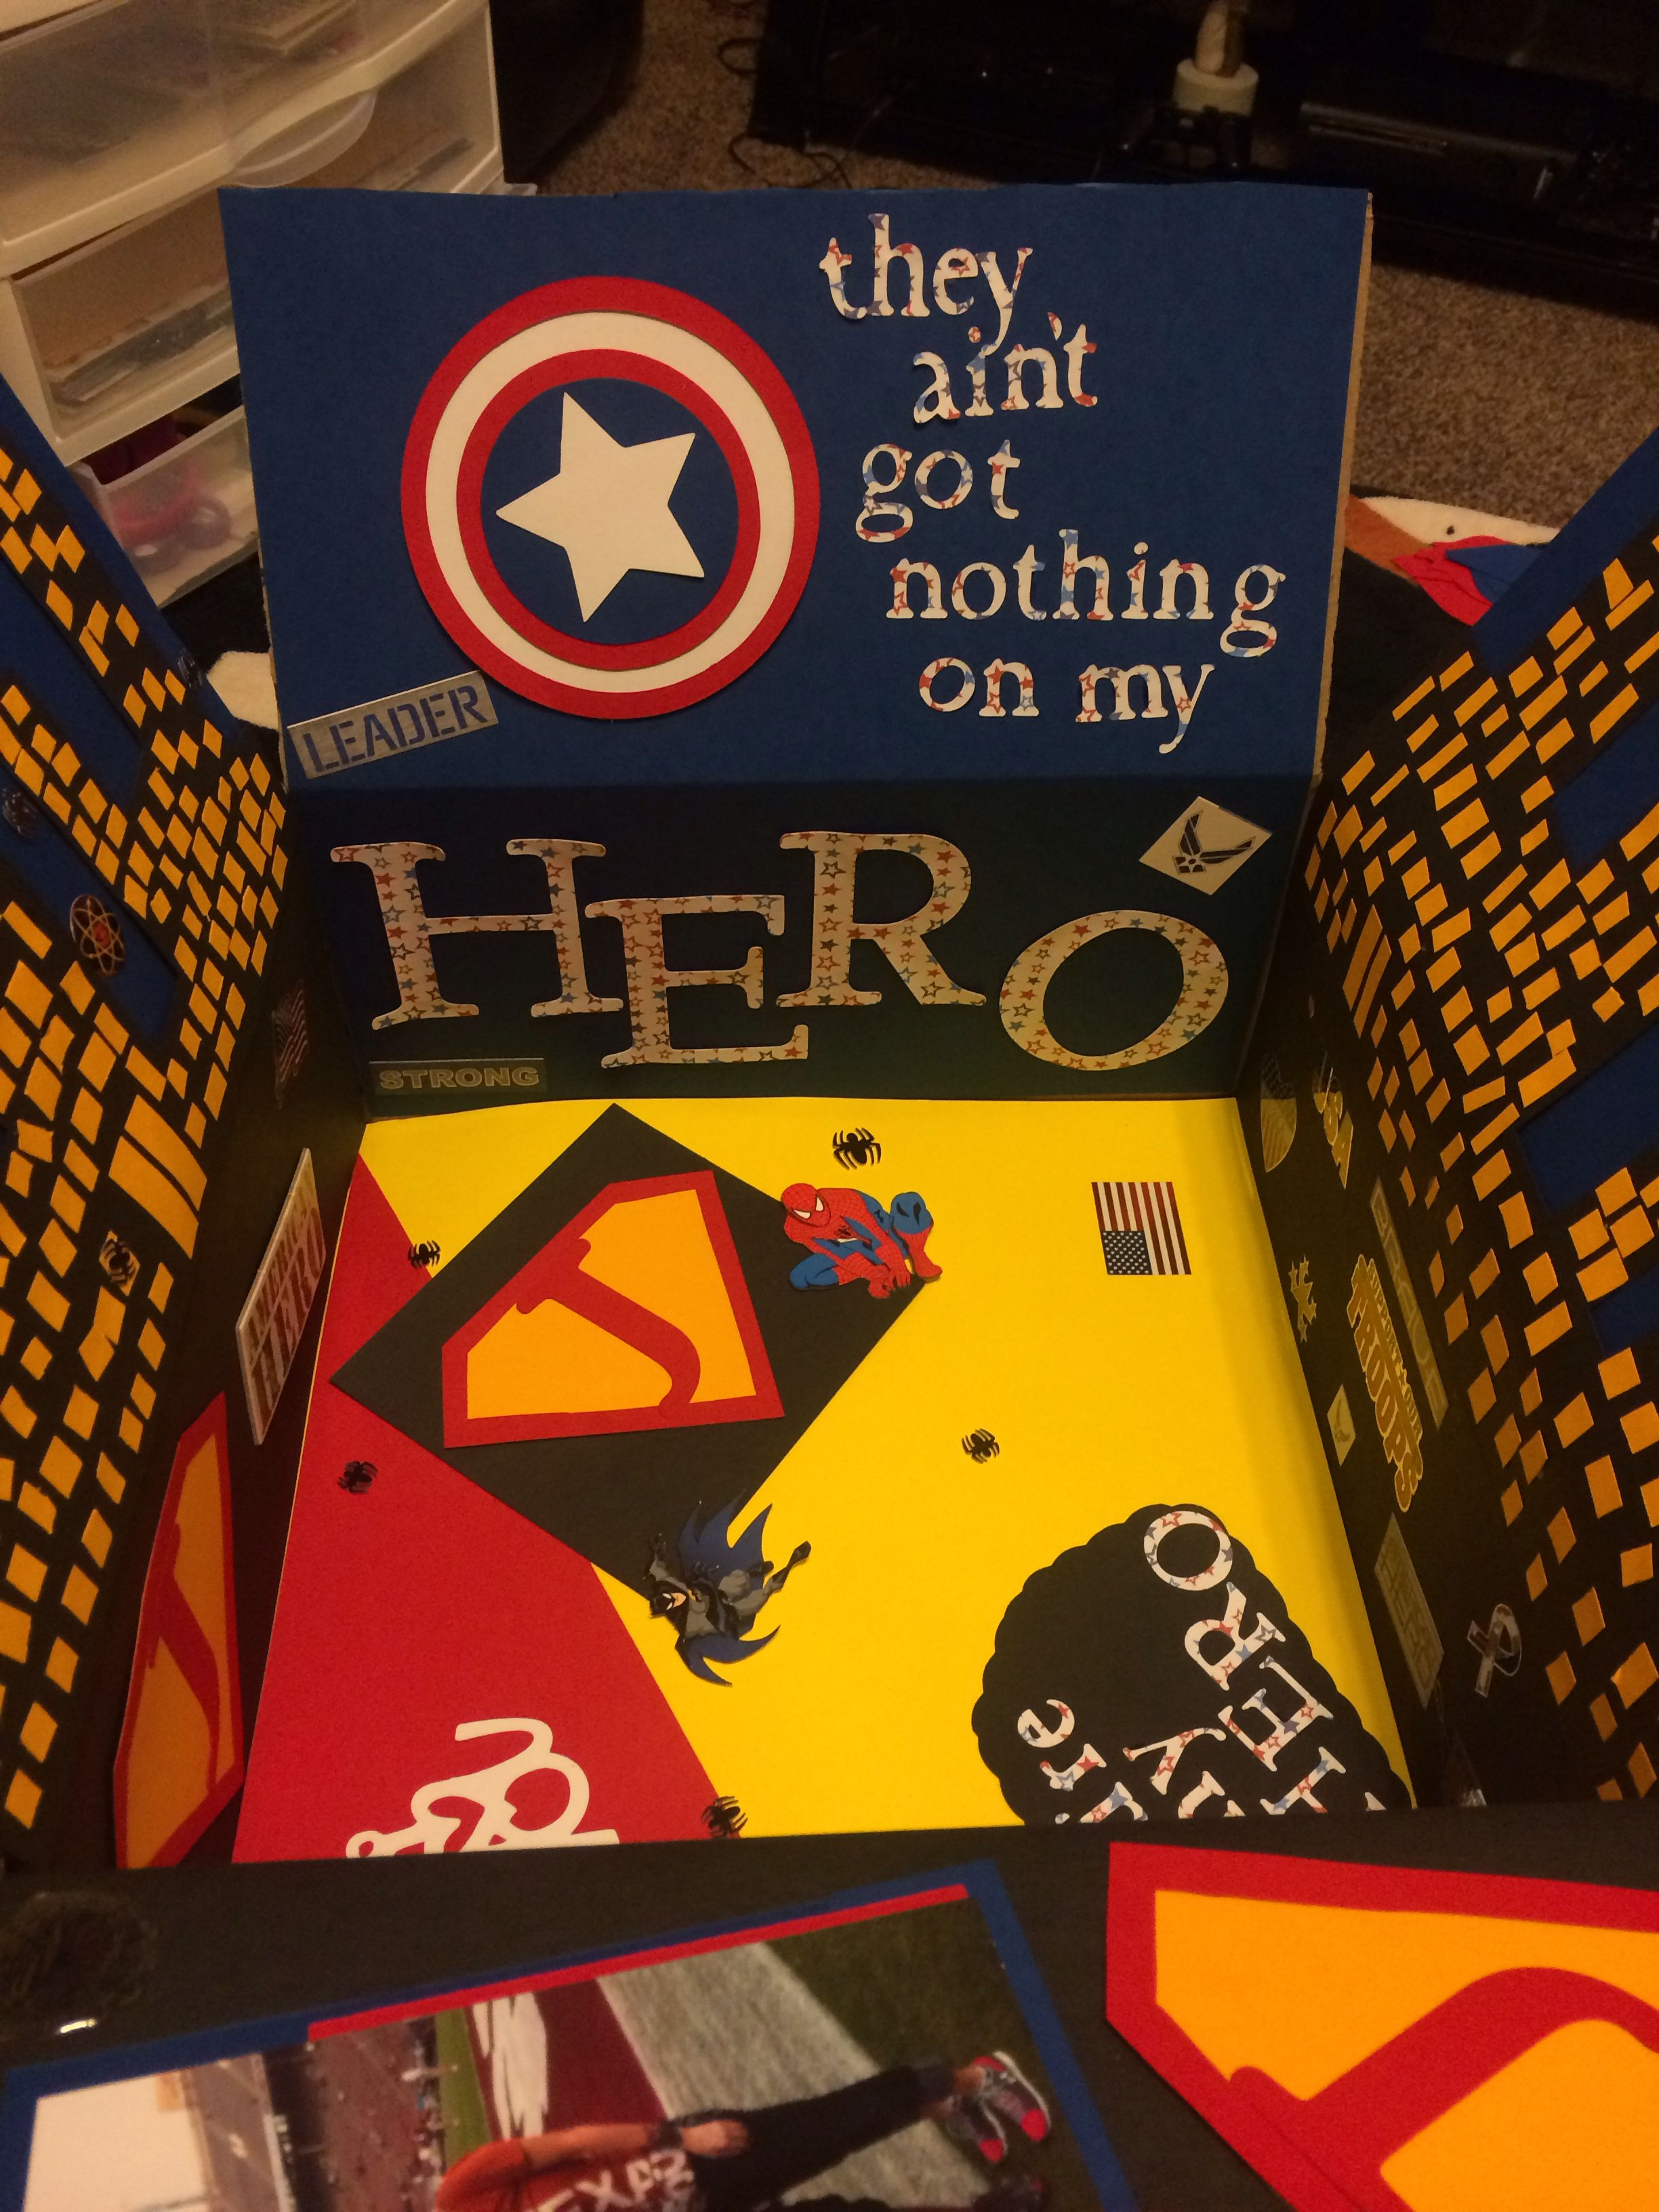 Super Hero deployment care package for my boyfriend. He's